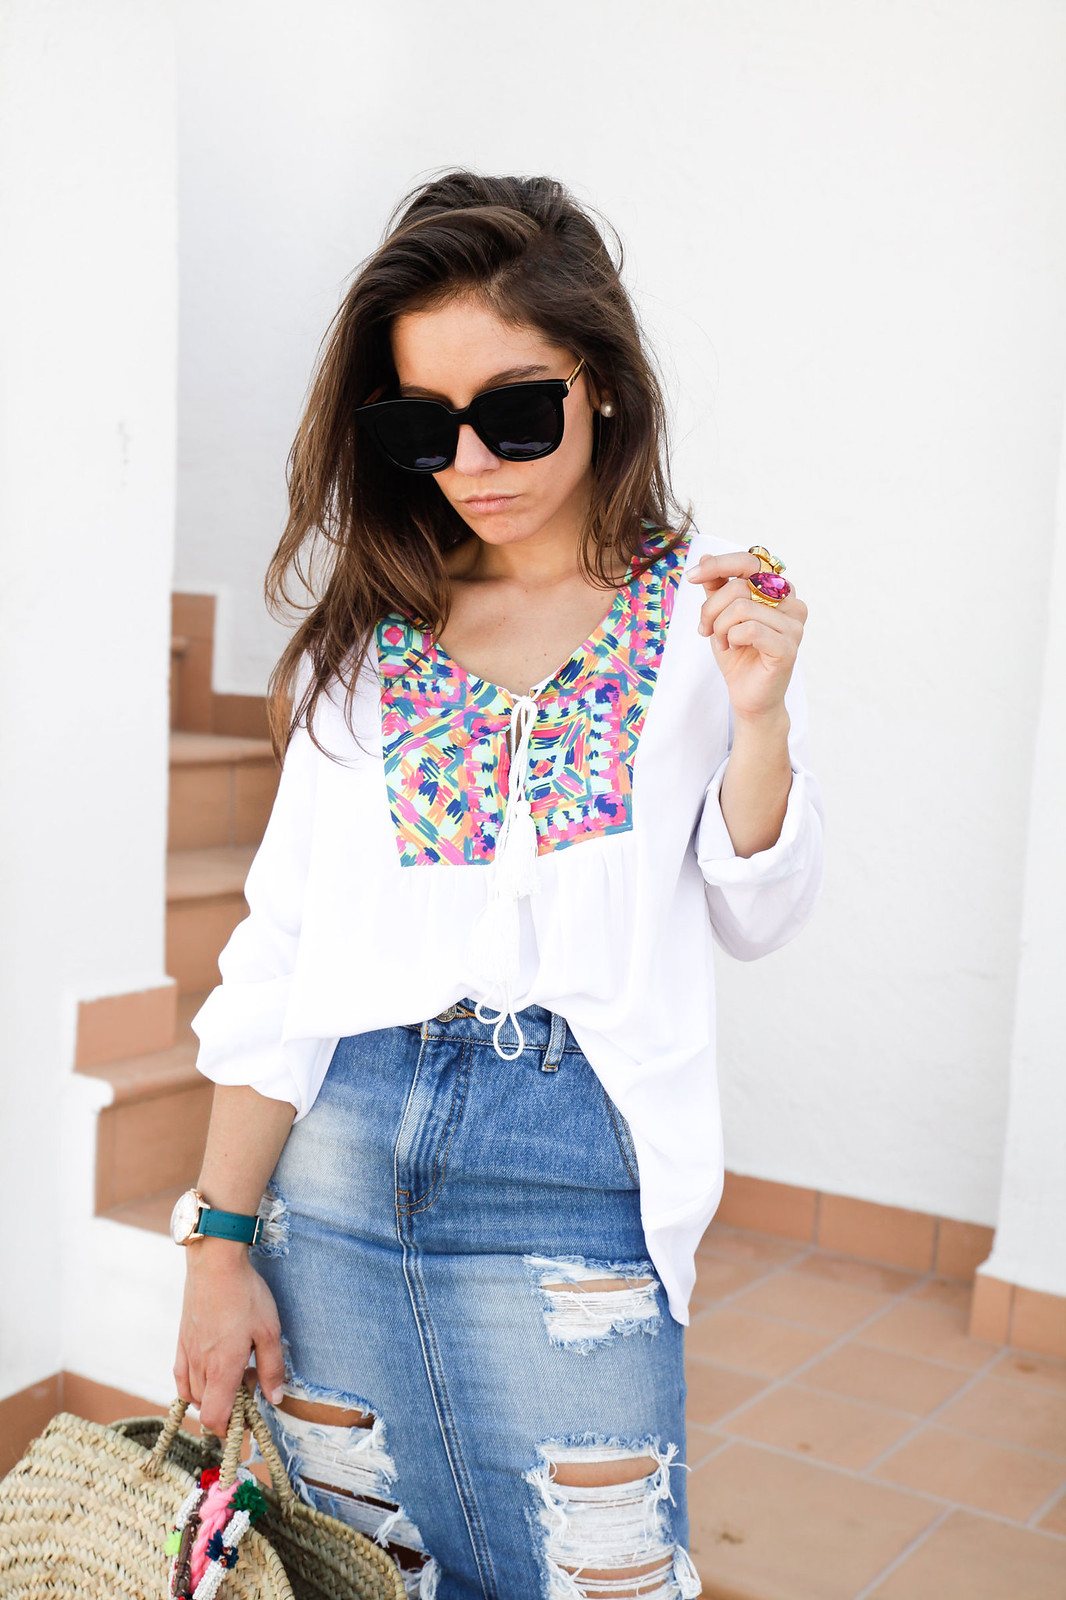 014_ripped_denim_skirt_white_shirt_ruga_style_theguestgirl_barcelona